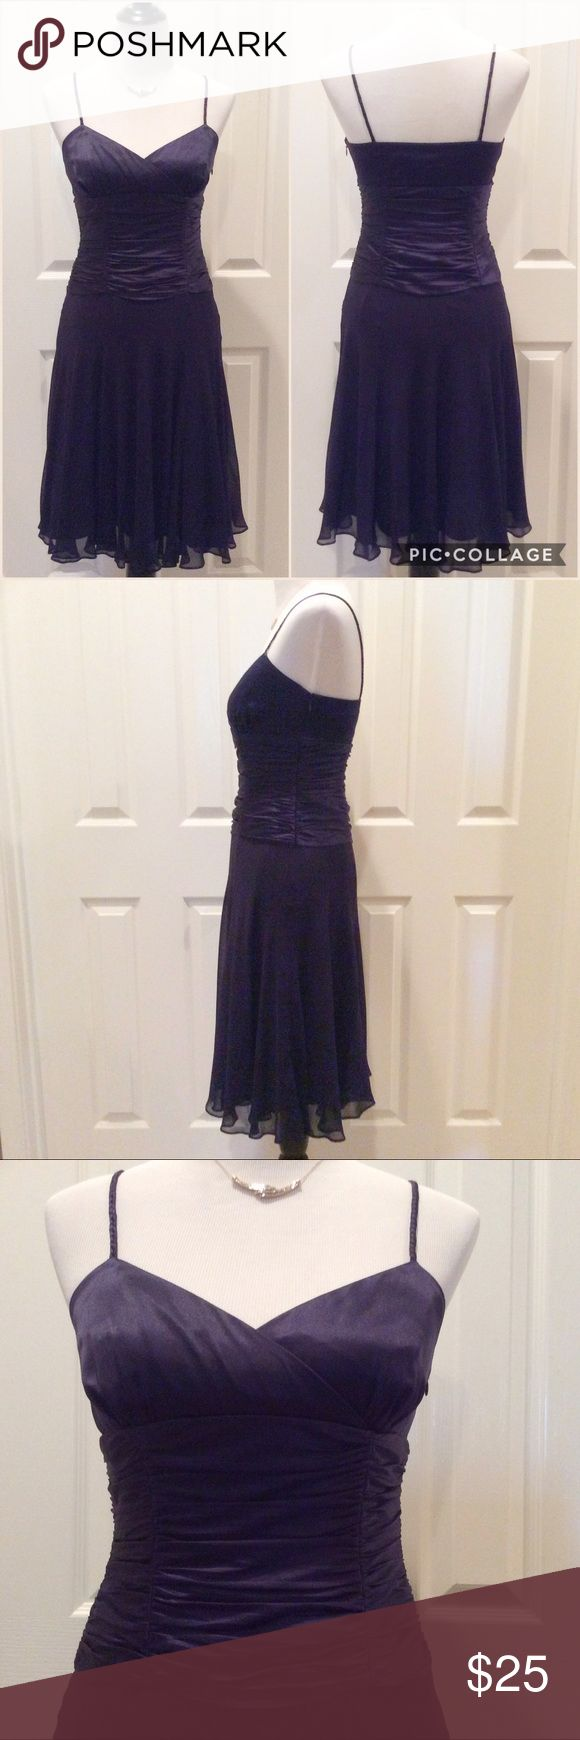 """Just In💕 Silk Chiffon Evening Dress Stunning silk chiffon evening dress. Deep plum...bordering on navy. Great condition. Worn once. Delicate braided spaghetti straps. Ruche pleating across the bodice for a flattering silhouette. Two layer silk chiffon full skirt. Side zip. Perfect for evening, wedding, prom and any formal occasion. 100% Silk. Measured laying flat, across and down. Approx 16.5""""B, 13.3""""W, 40L (from top of shoulder strap to bottom of hem). Nine West Dresses"""